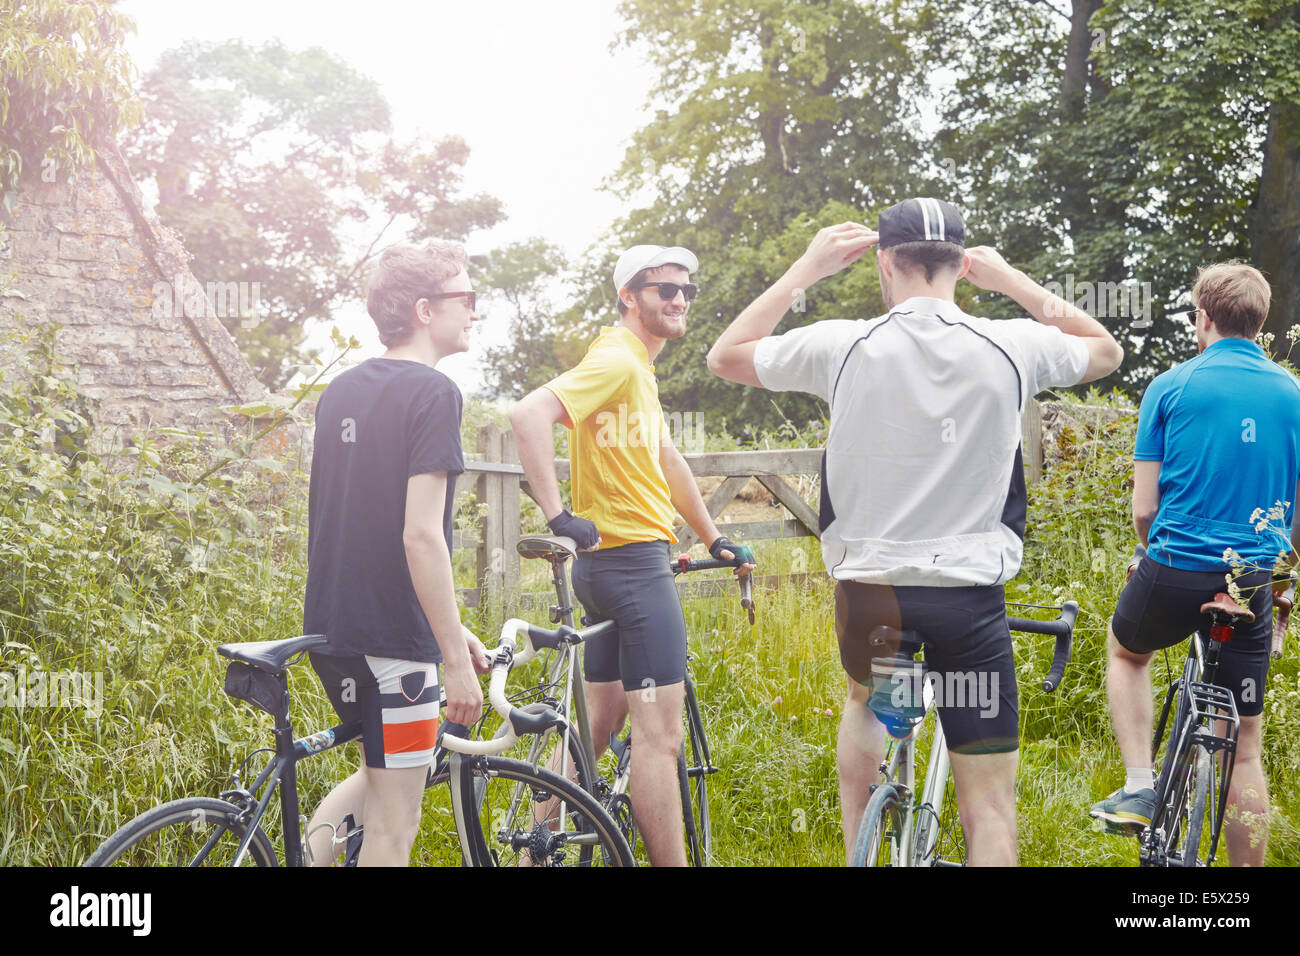 Cyclists stopping on leafy countryside lane, Cotswolds, UK - Stock Image